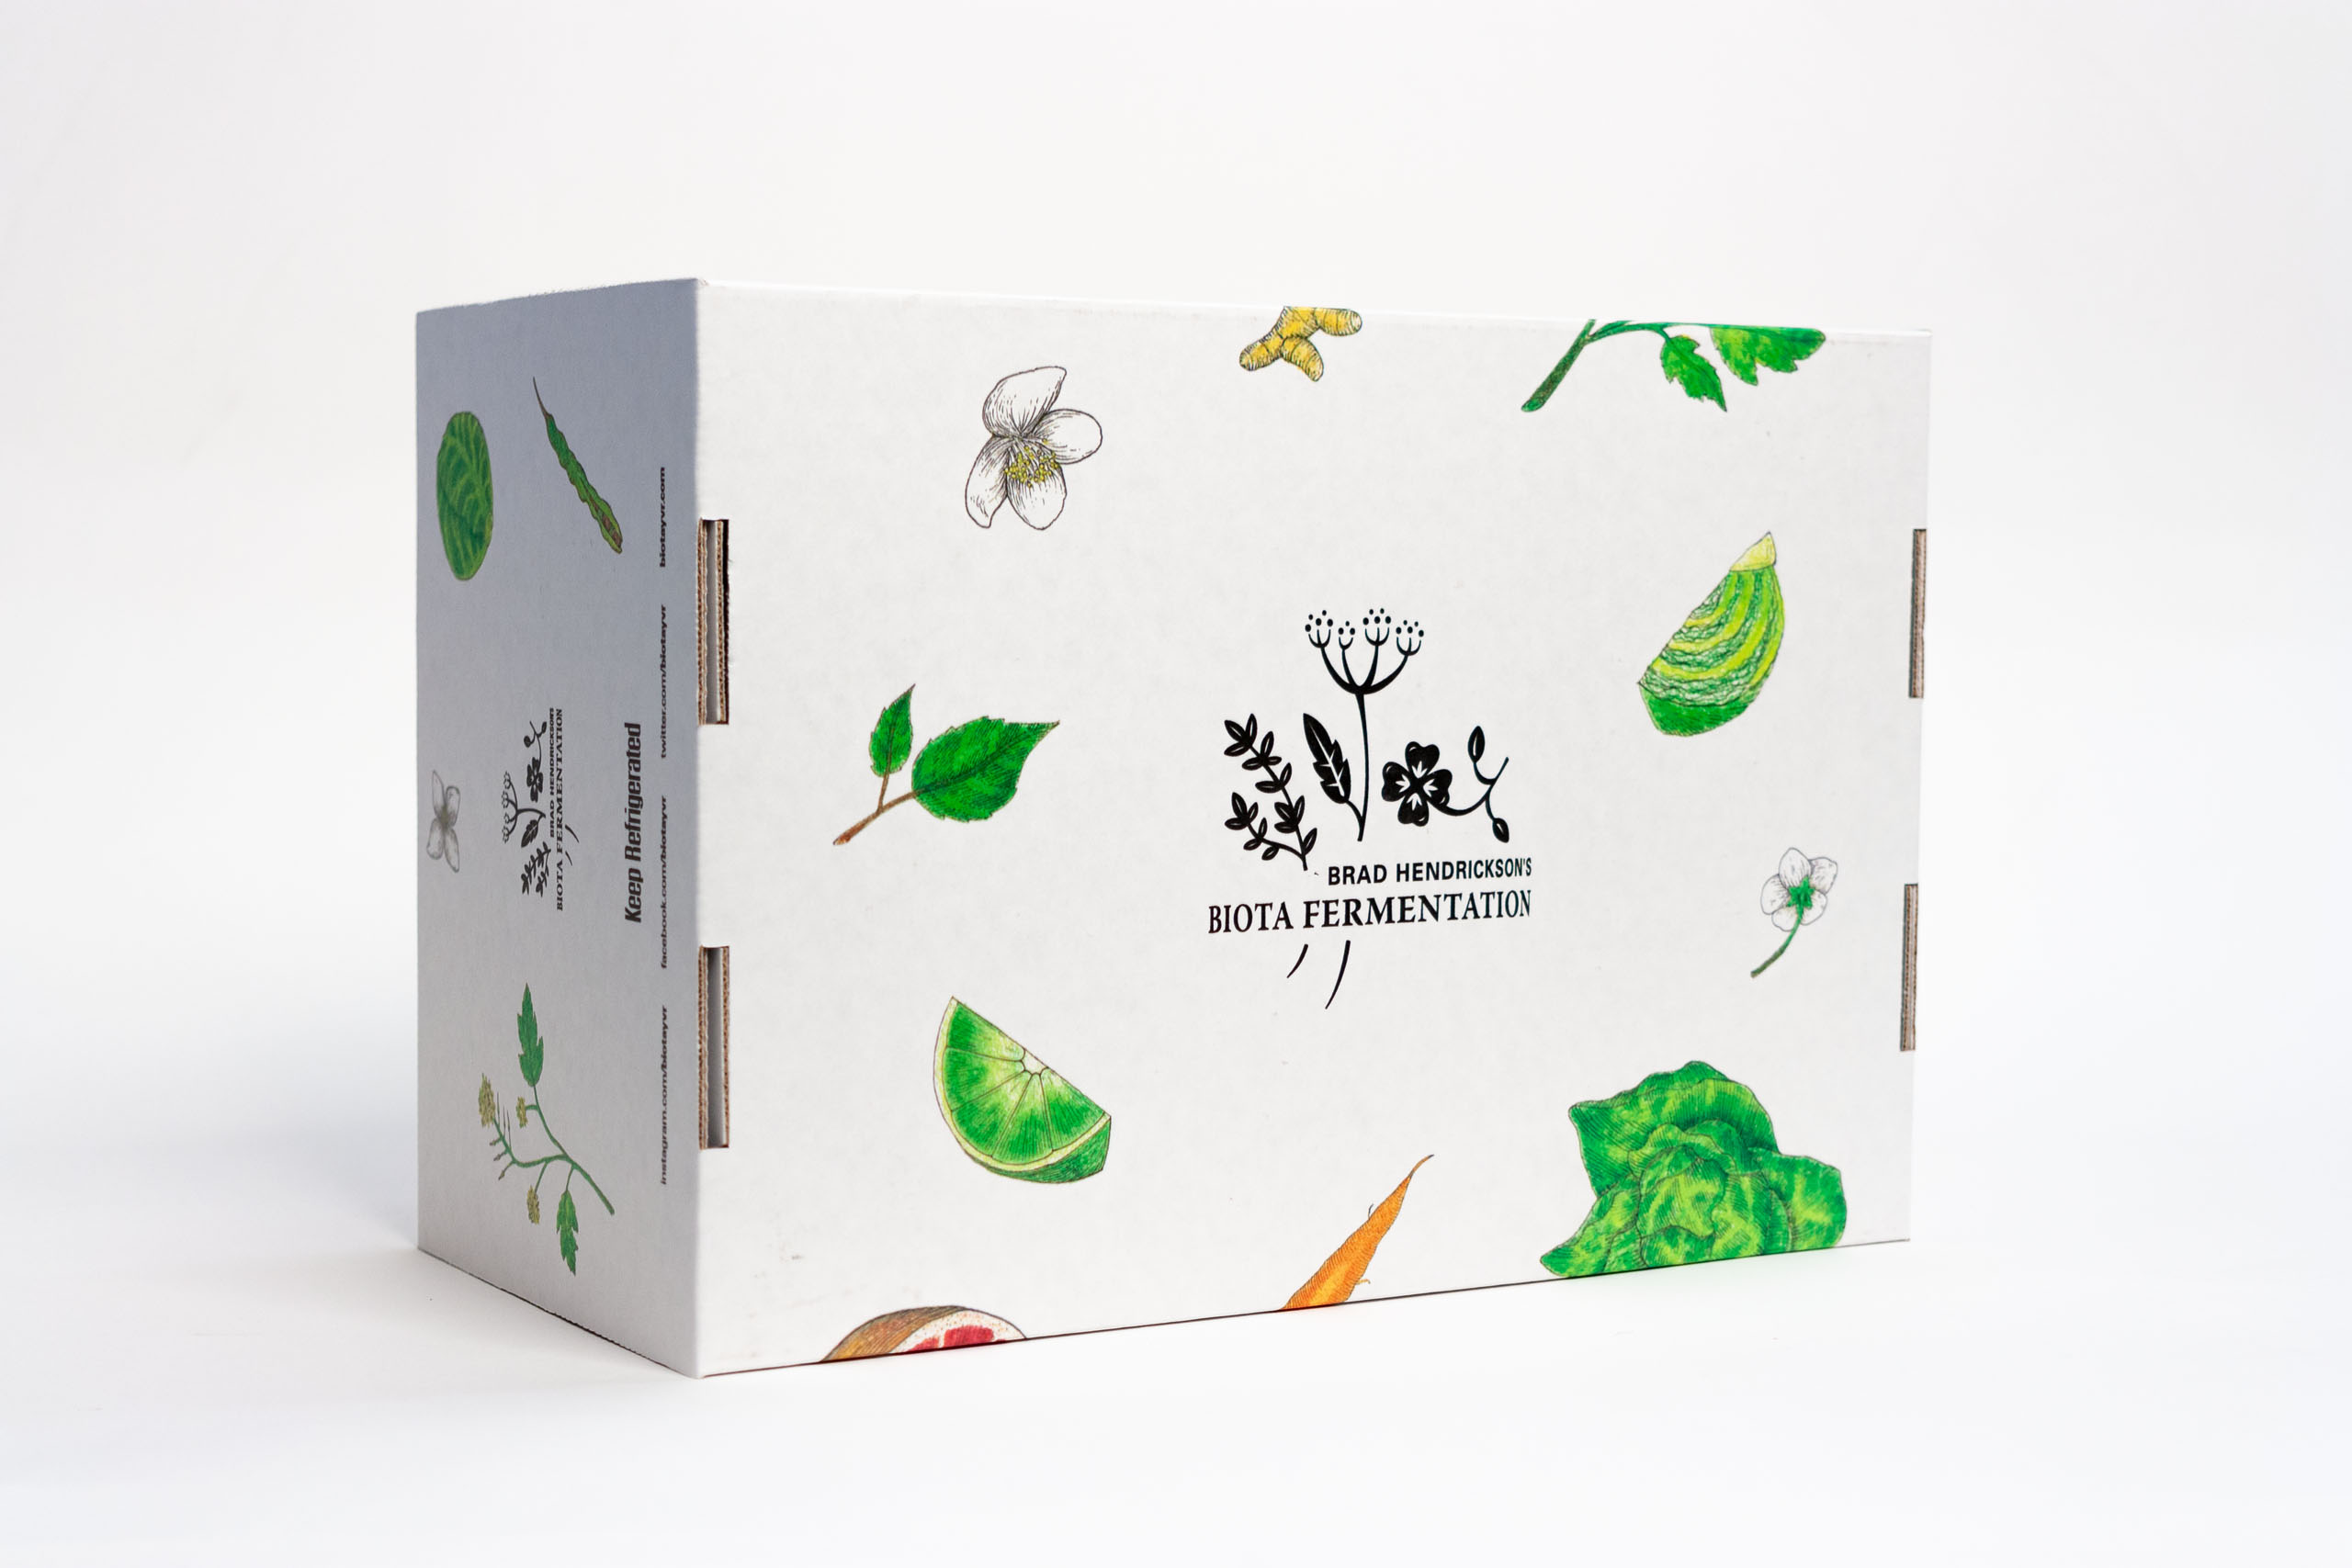 The underside of the Biota gift box has a large centered logo surrounded by illustrations — by Yagnyuk.